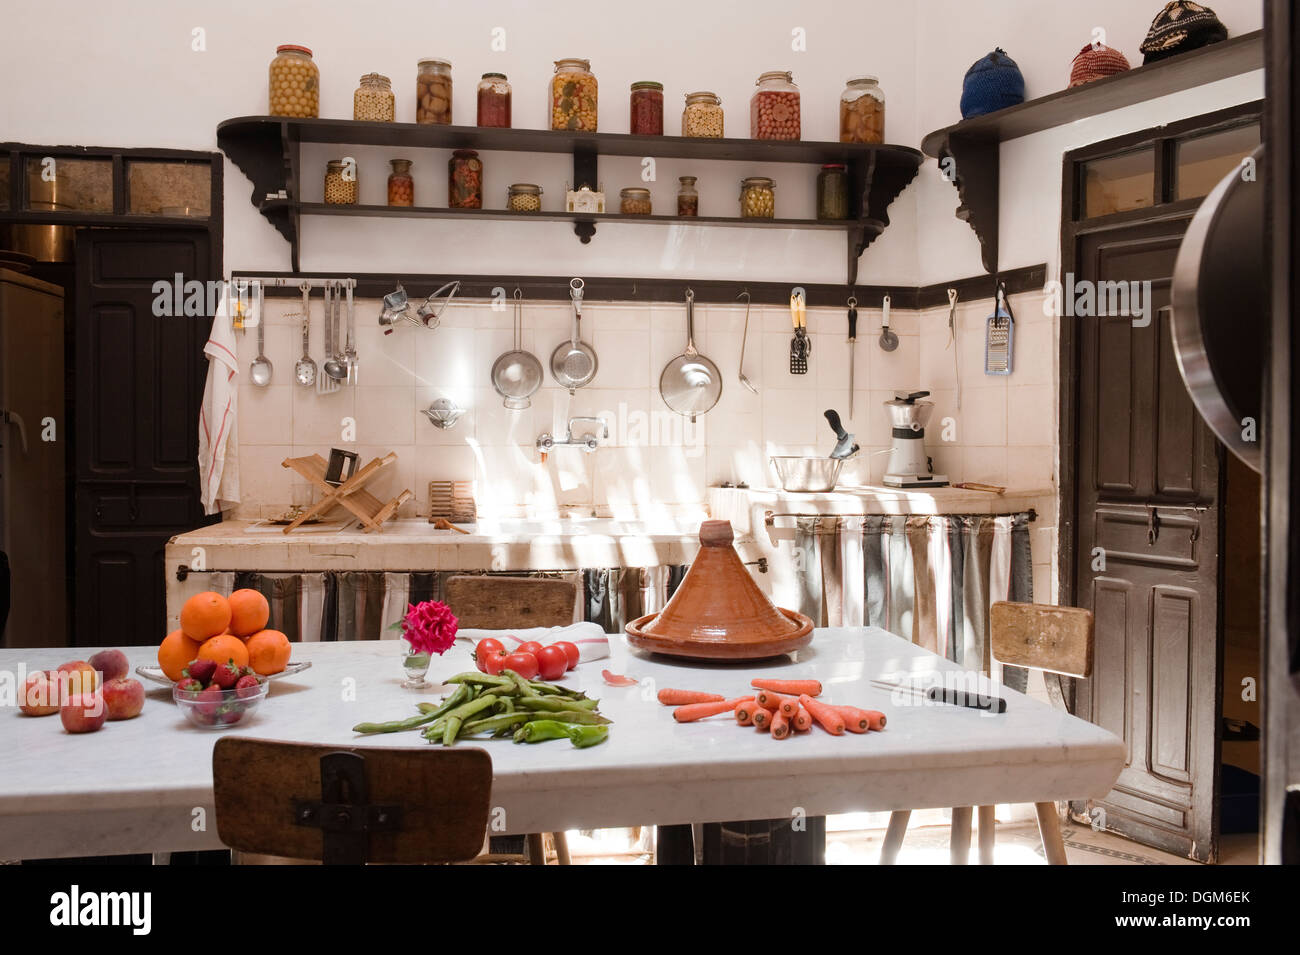 Shelving Plate Rack Stockfotos & Shelving Plate Rack Bilder - Alamy